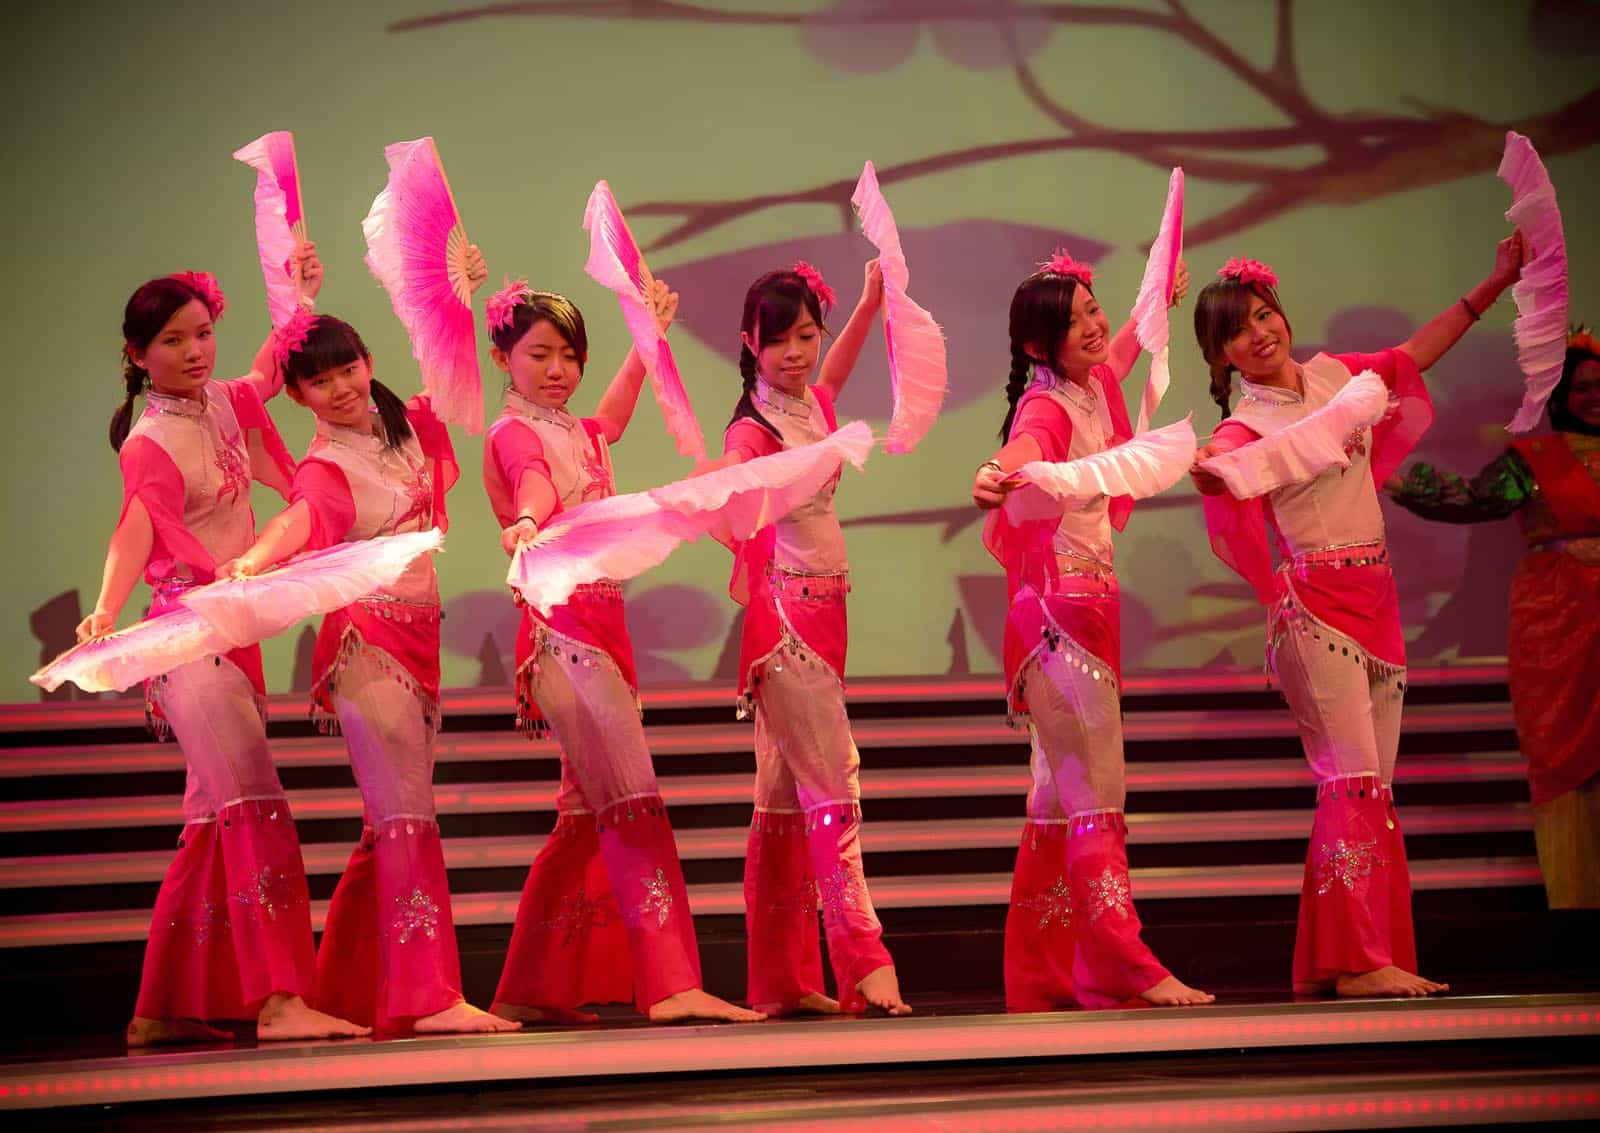 Best Corporate Event Photographer Bangkok | Stage Feather Dance Photography Thailand